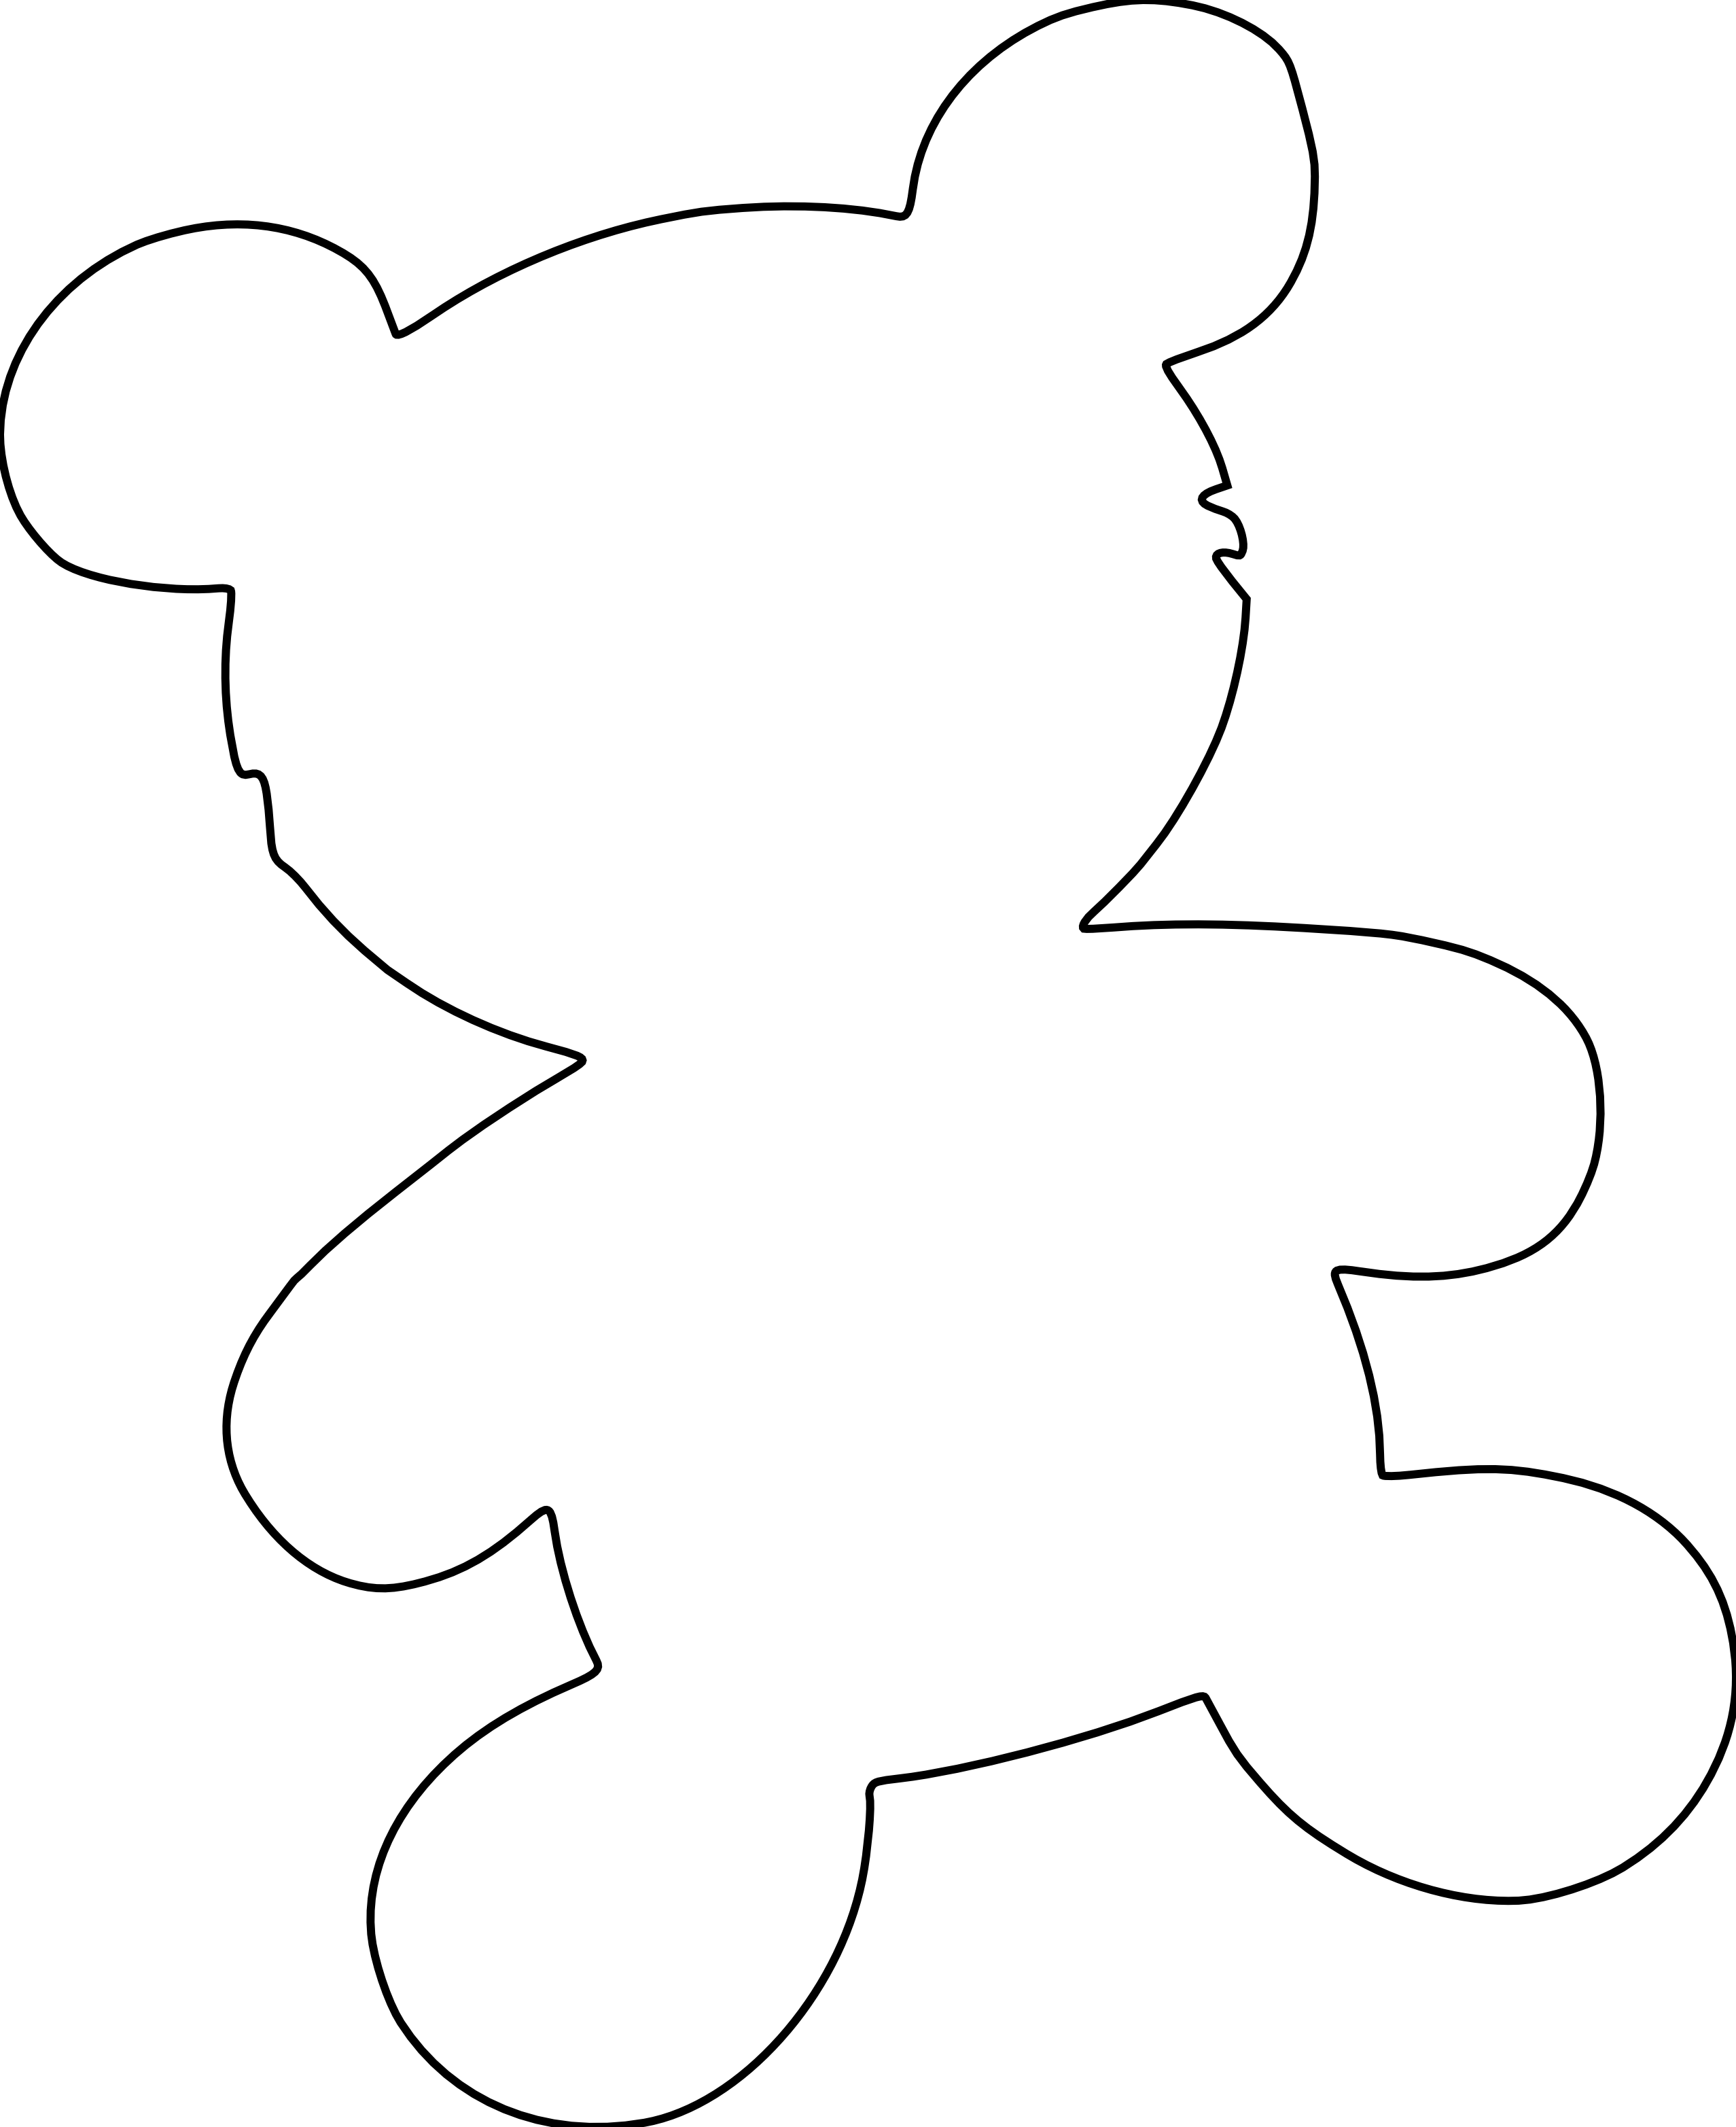 Line Drawing Teddy Bear : Teddy bear silhouette clipart best